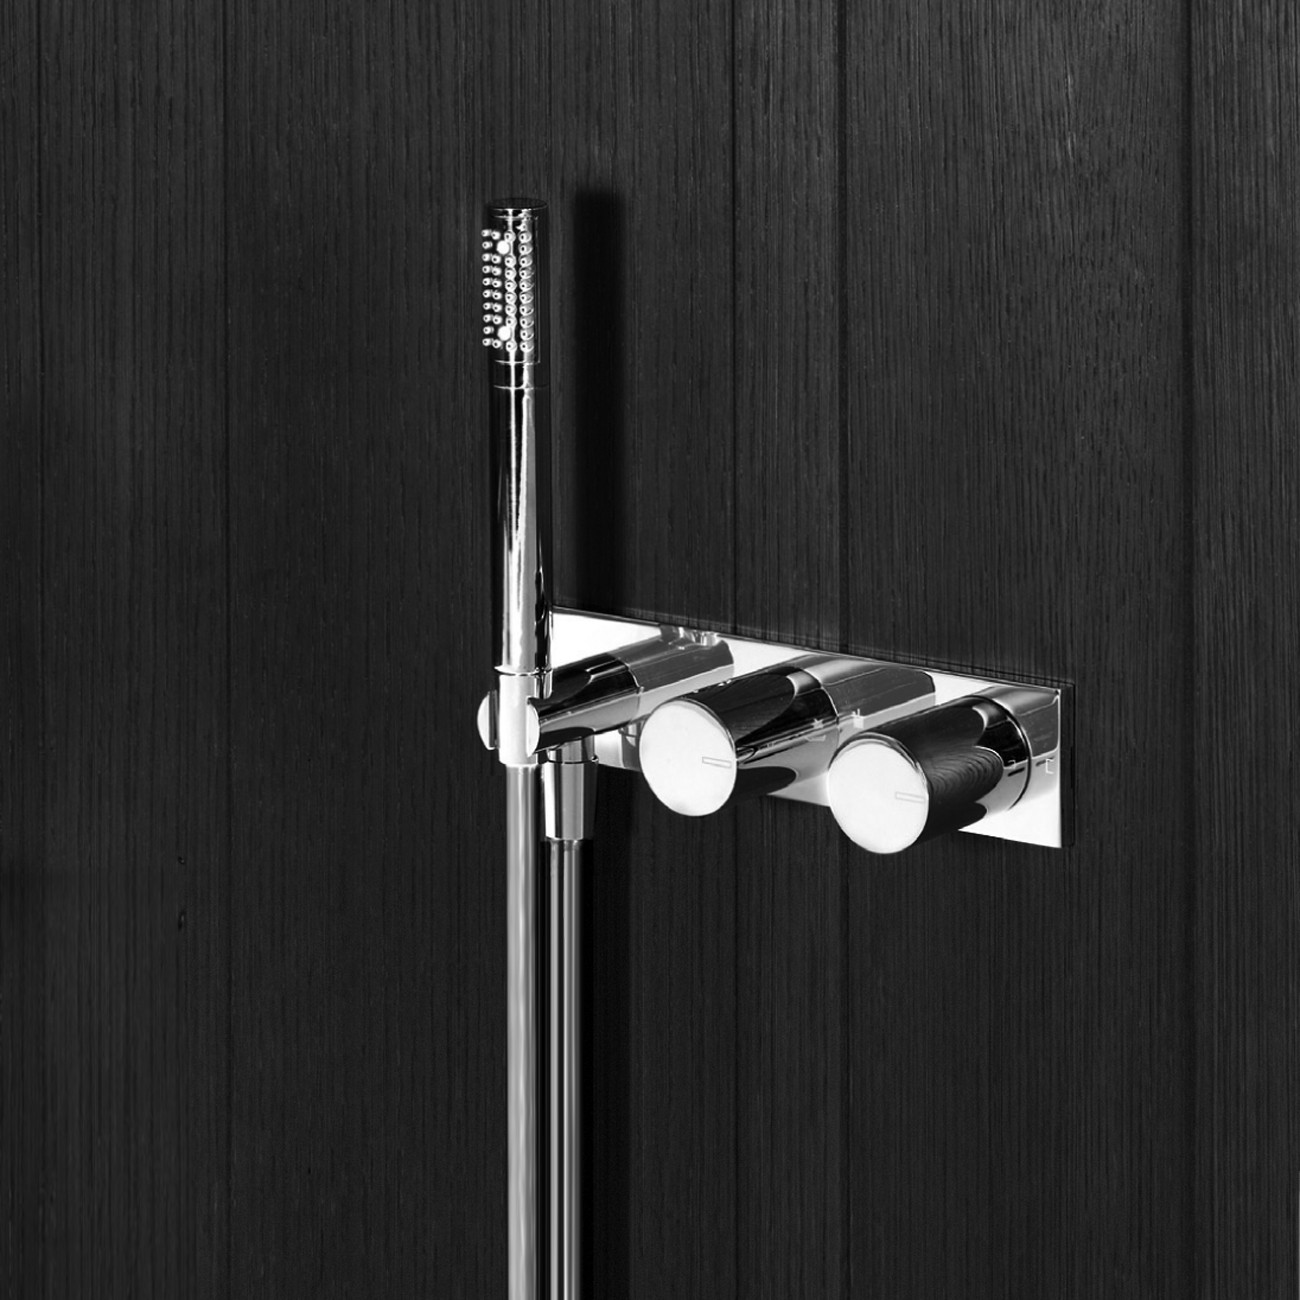 Art 584B + D184A Milano Shower Mixer